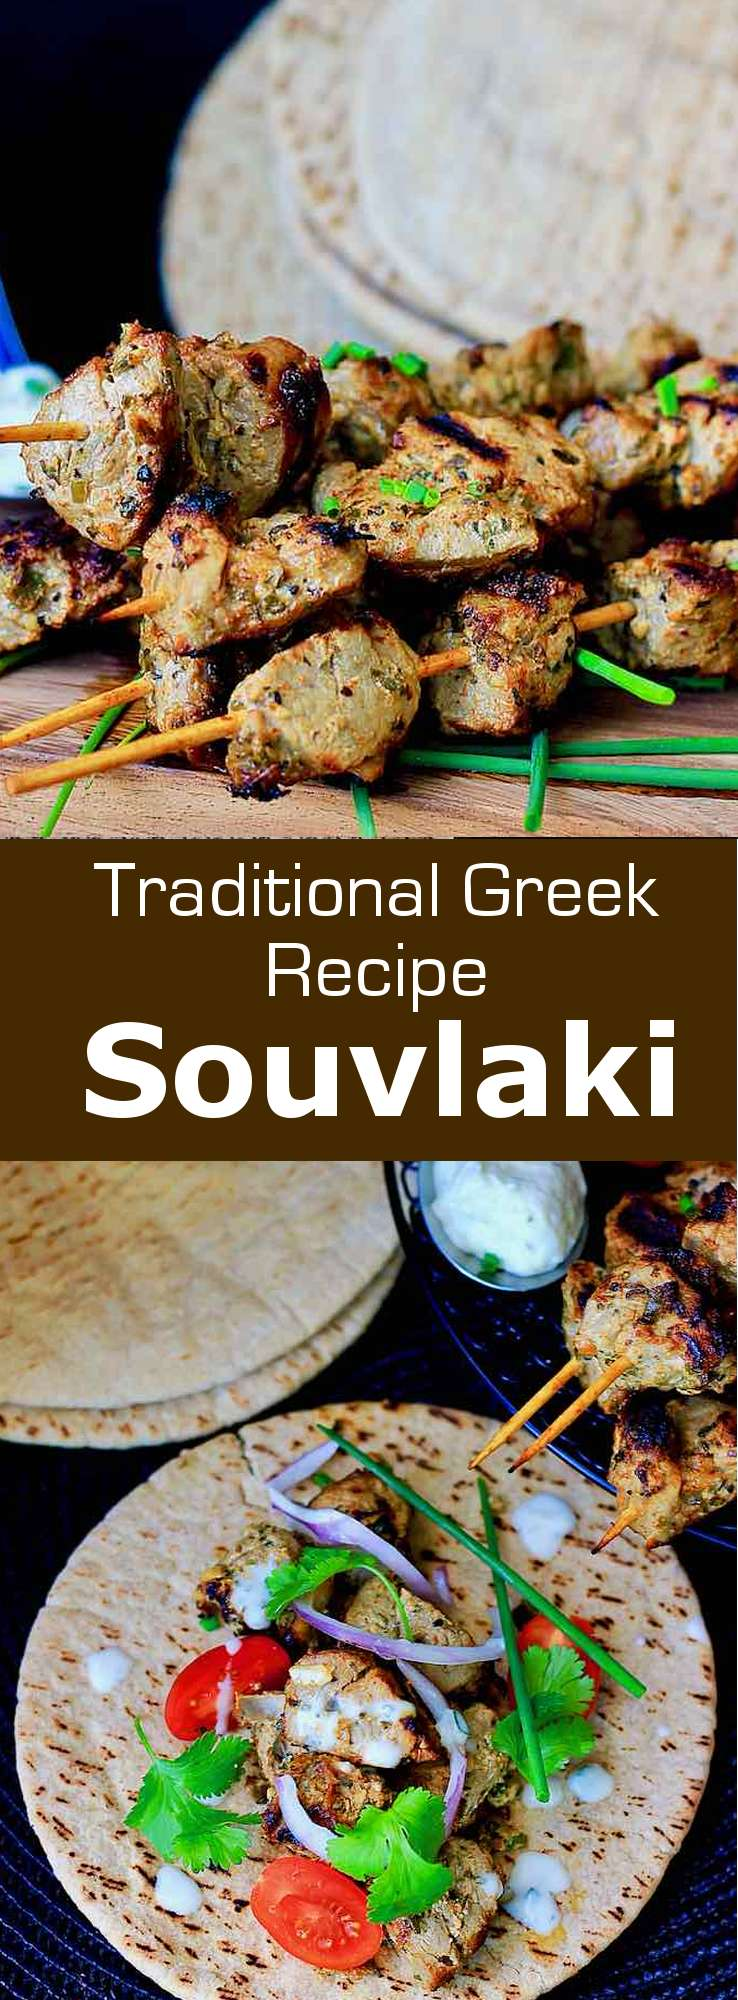 Souvlaki (σουβλάκι) is a popular Greek dish made from small pieces of pork, chicken or beef that are traditionally grilled on a barbecue. #Greece #GreekCuisine #GreekFood #GreekRecipe #MediterraneanCuisine #WorldCuisine #196flavors